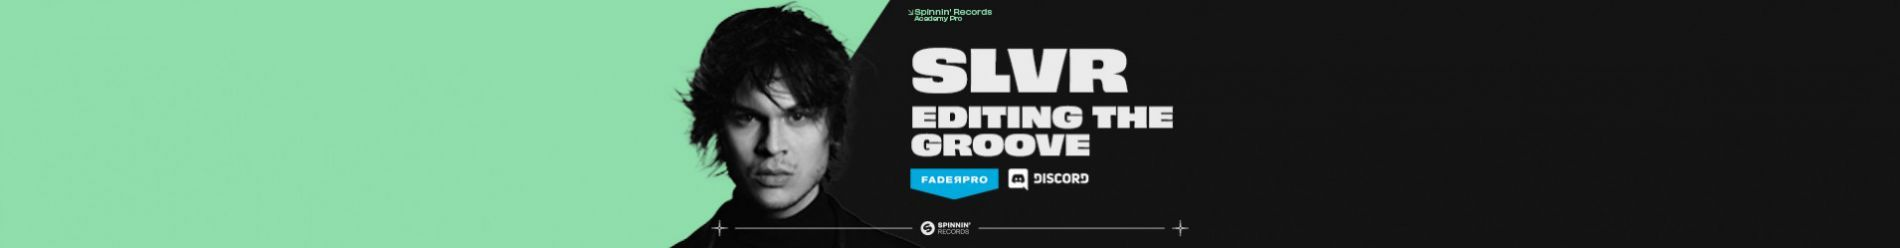 REGISTER TO SLVR'S EXCLUSIVE MASTERCLASS ON OUR DISCORD SERVER!